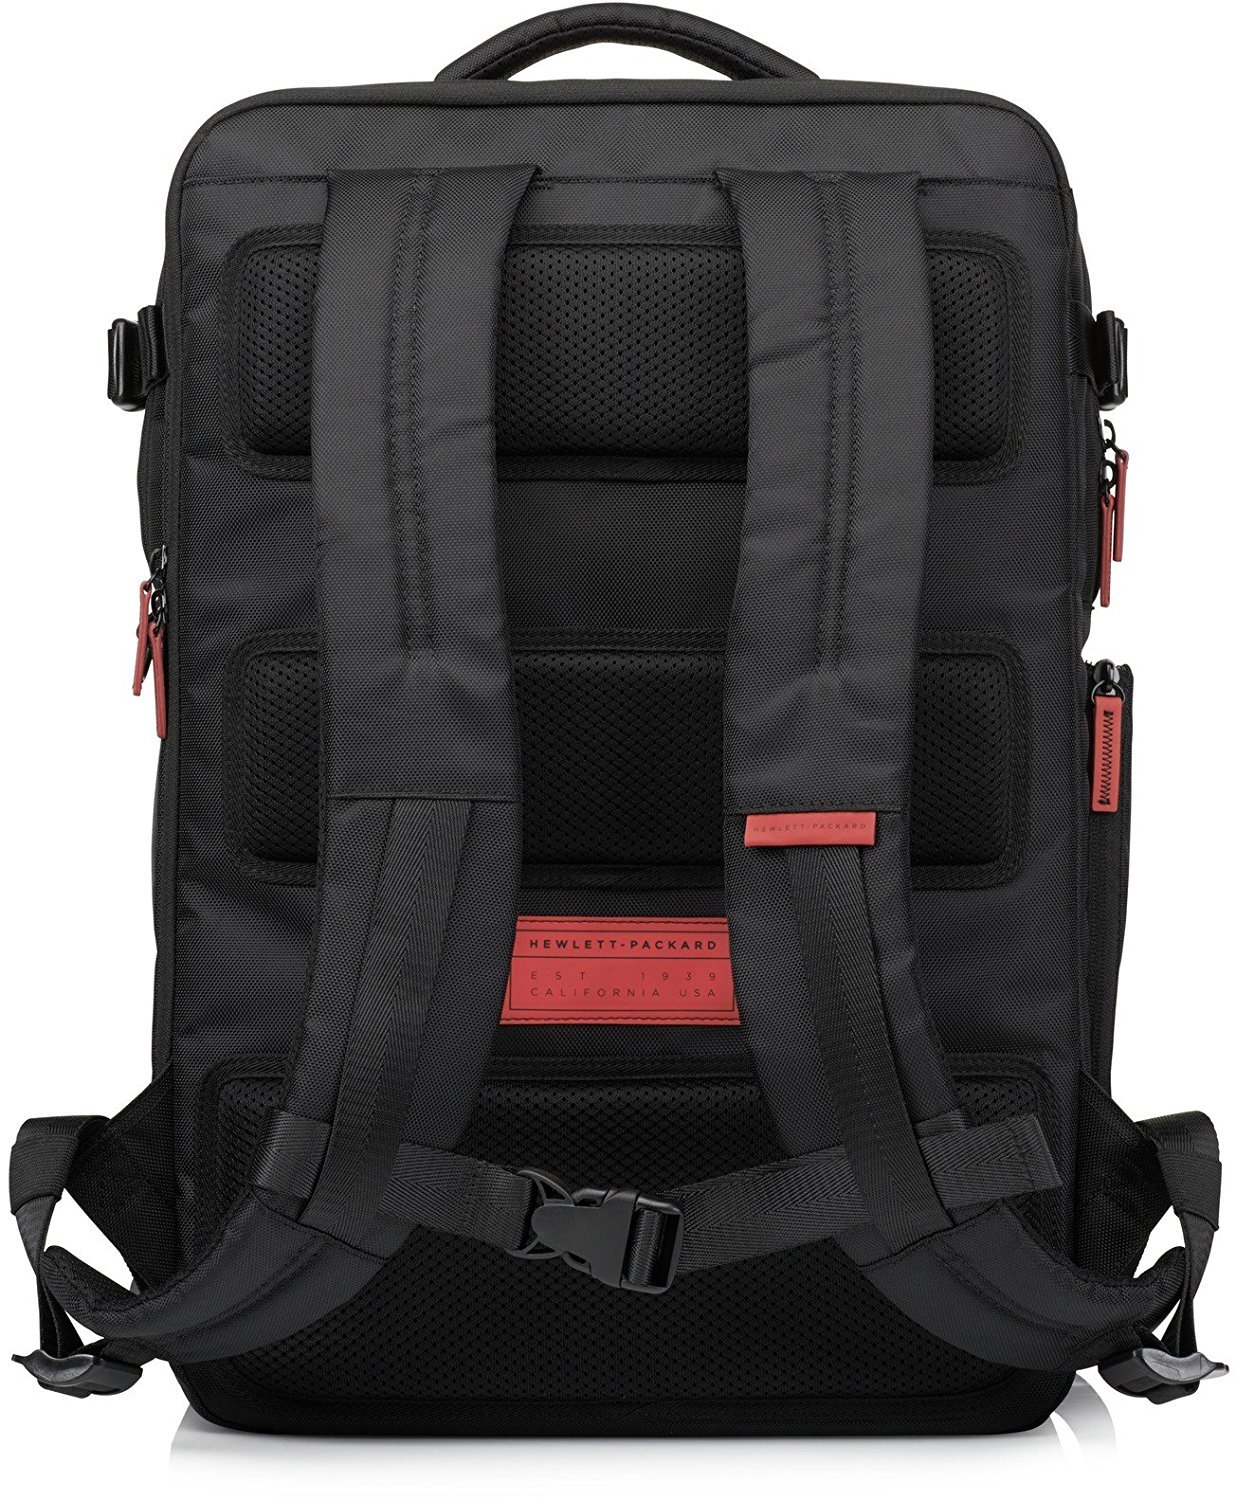 "OMEN 17.3"" Gaming Backpack image"